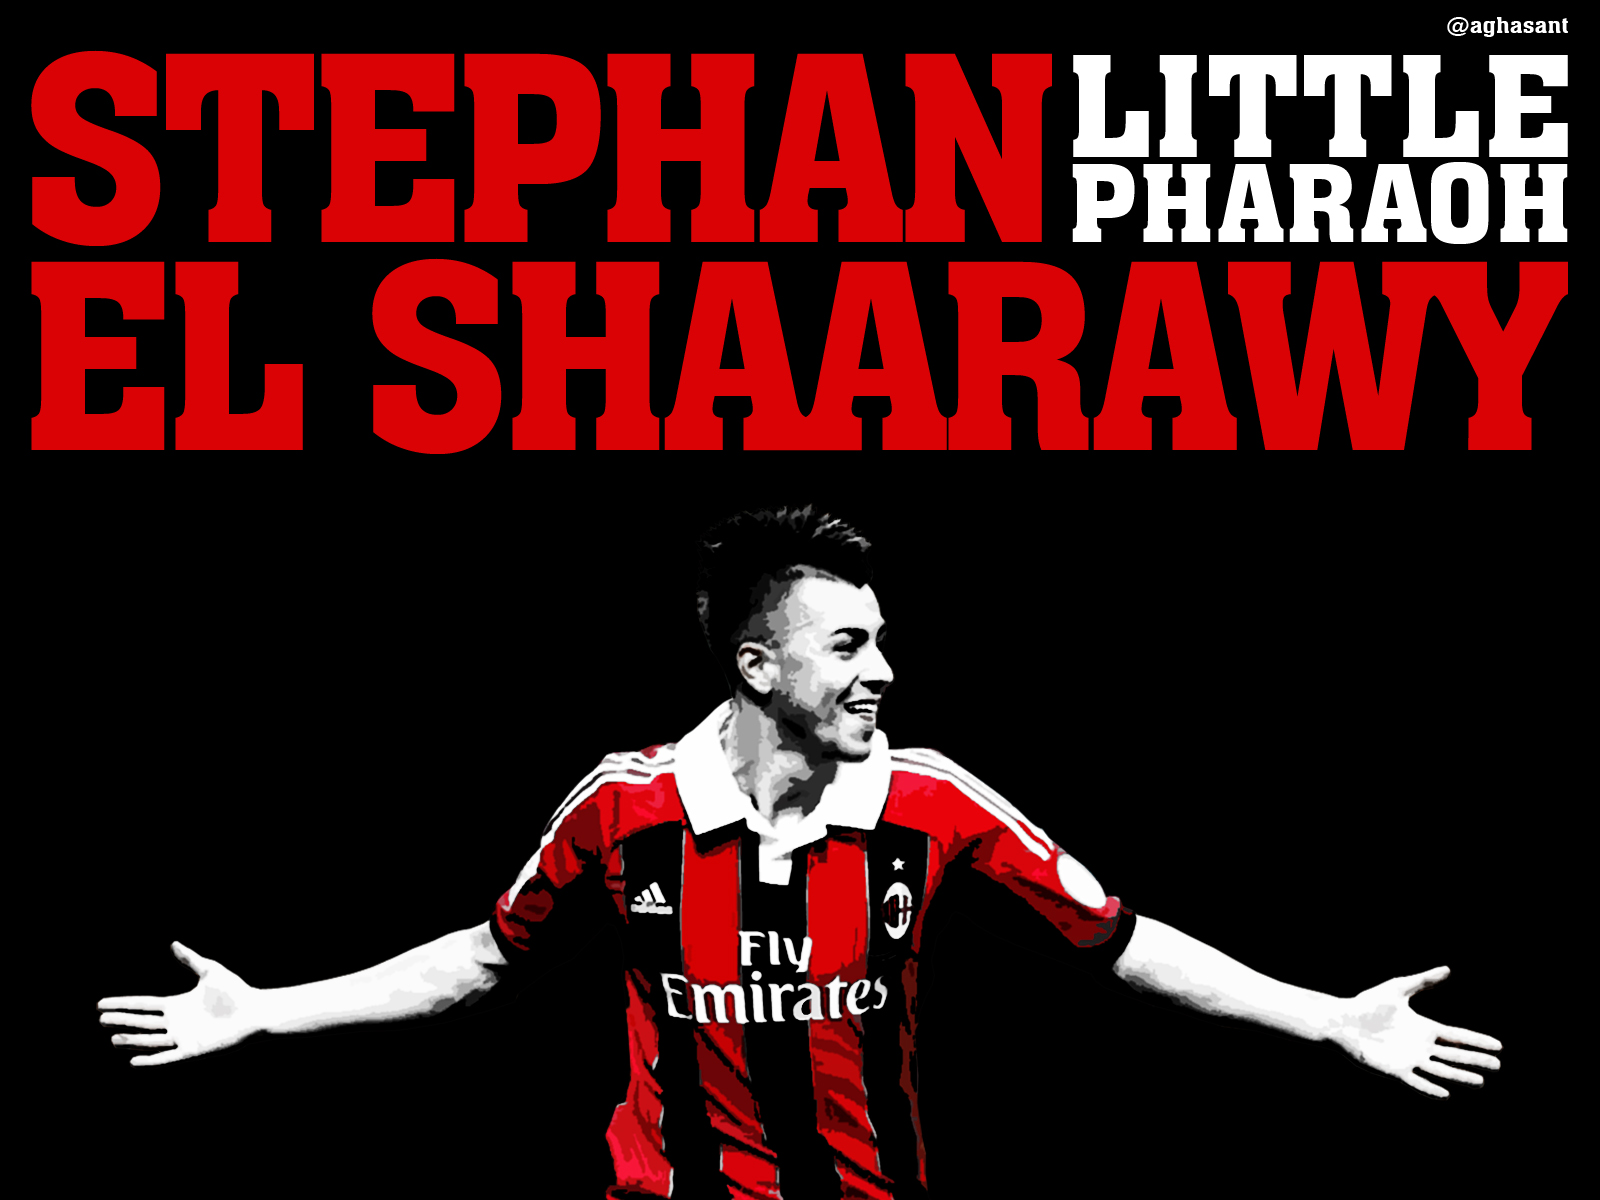 8589130481537 el shaarawy little pharaoh ac milan wallpaper hdjpg 1600x1200